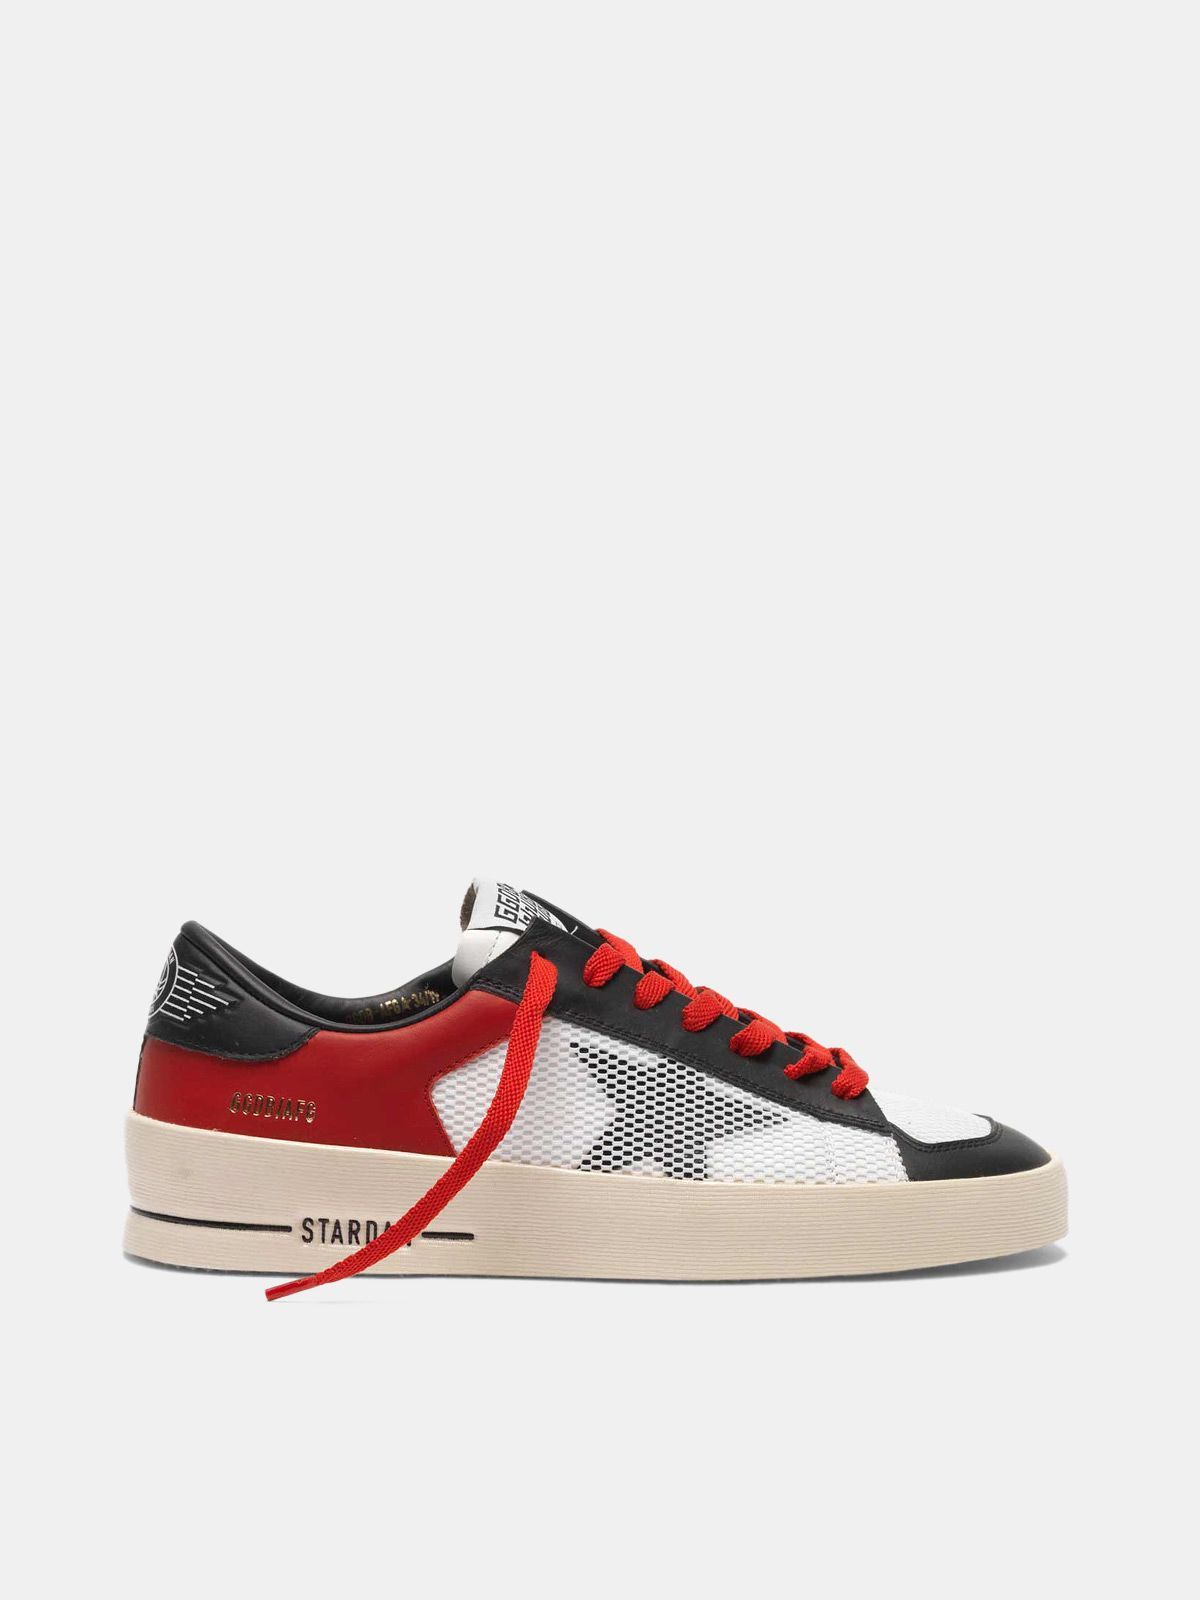 Golden Goose - Stardan sneakers in red and white leather with mesh inserts in